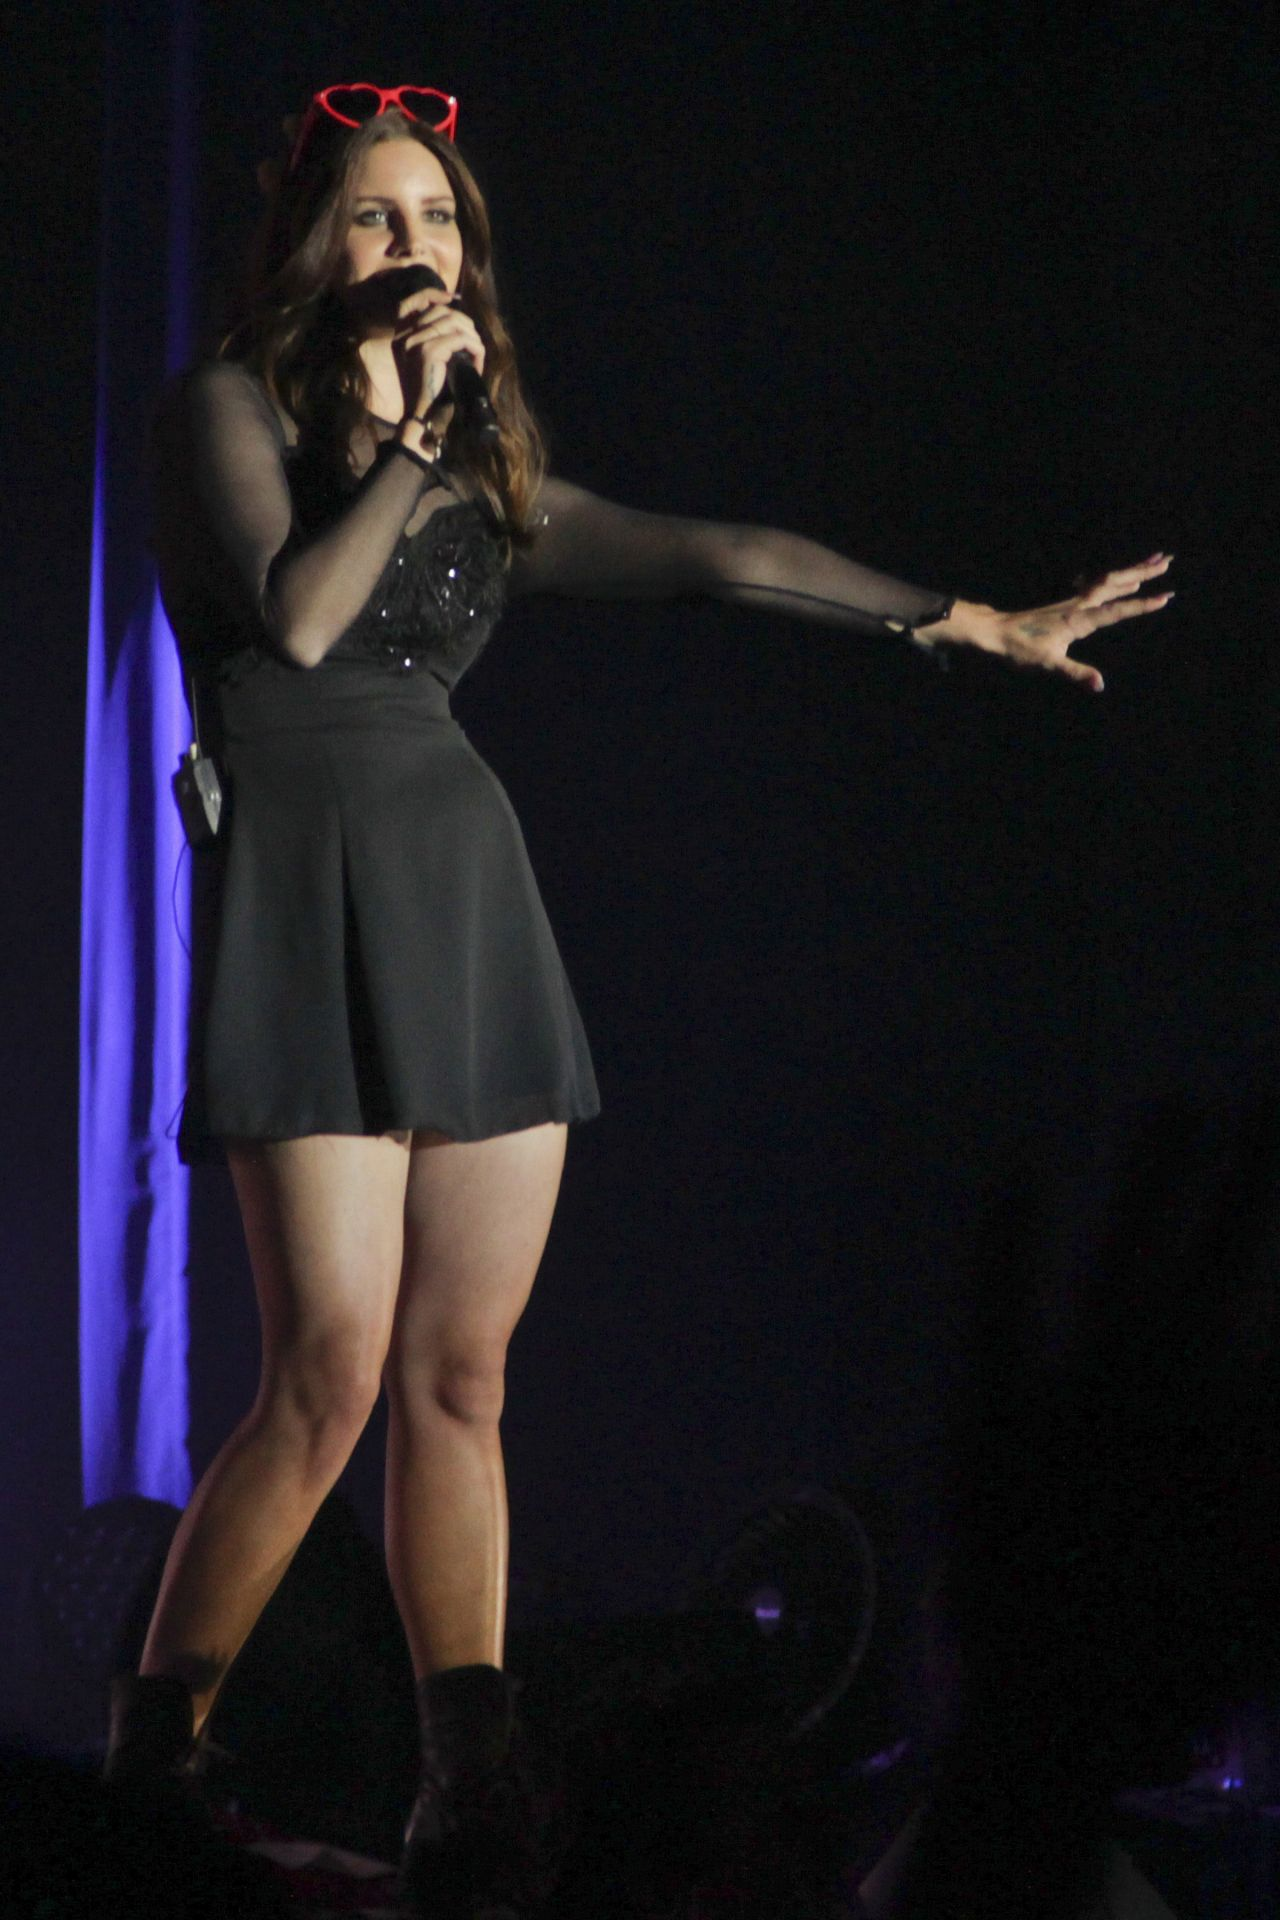 Lana Del Rey - Live Performance at the WaMu Theatre in ...